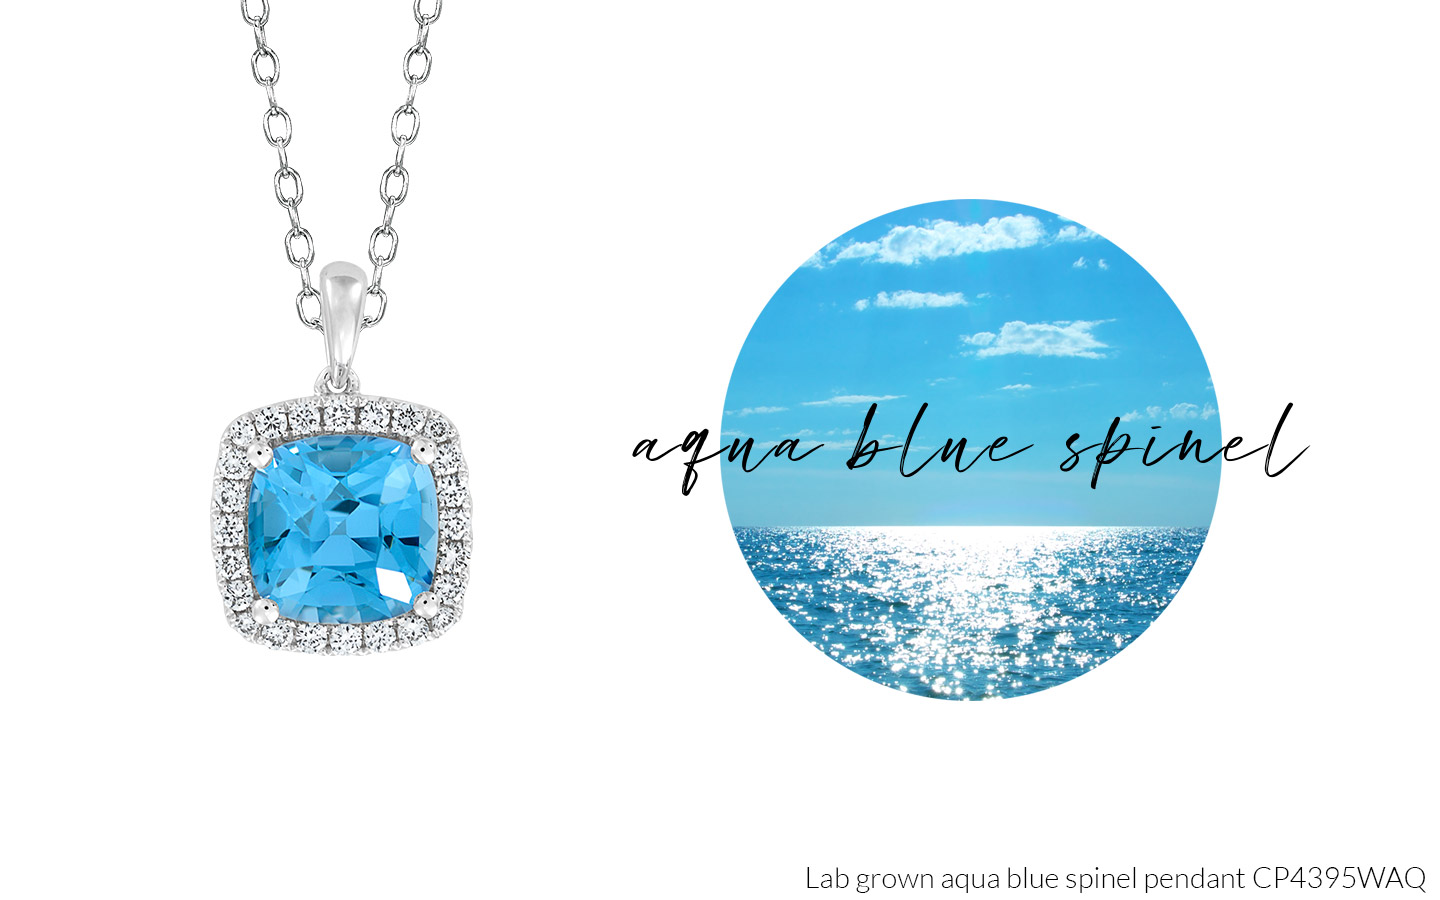 Summer 2020 Aqua Blue Spinel